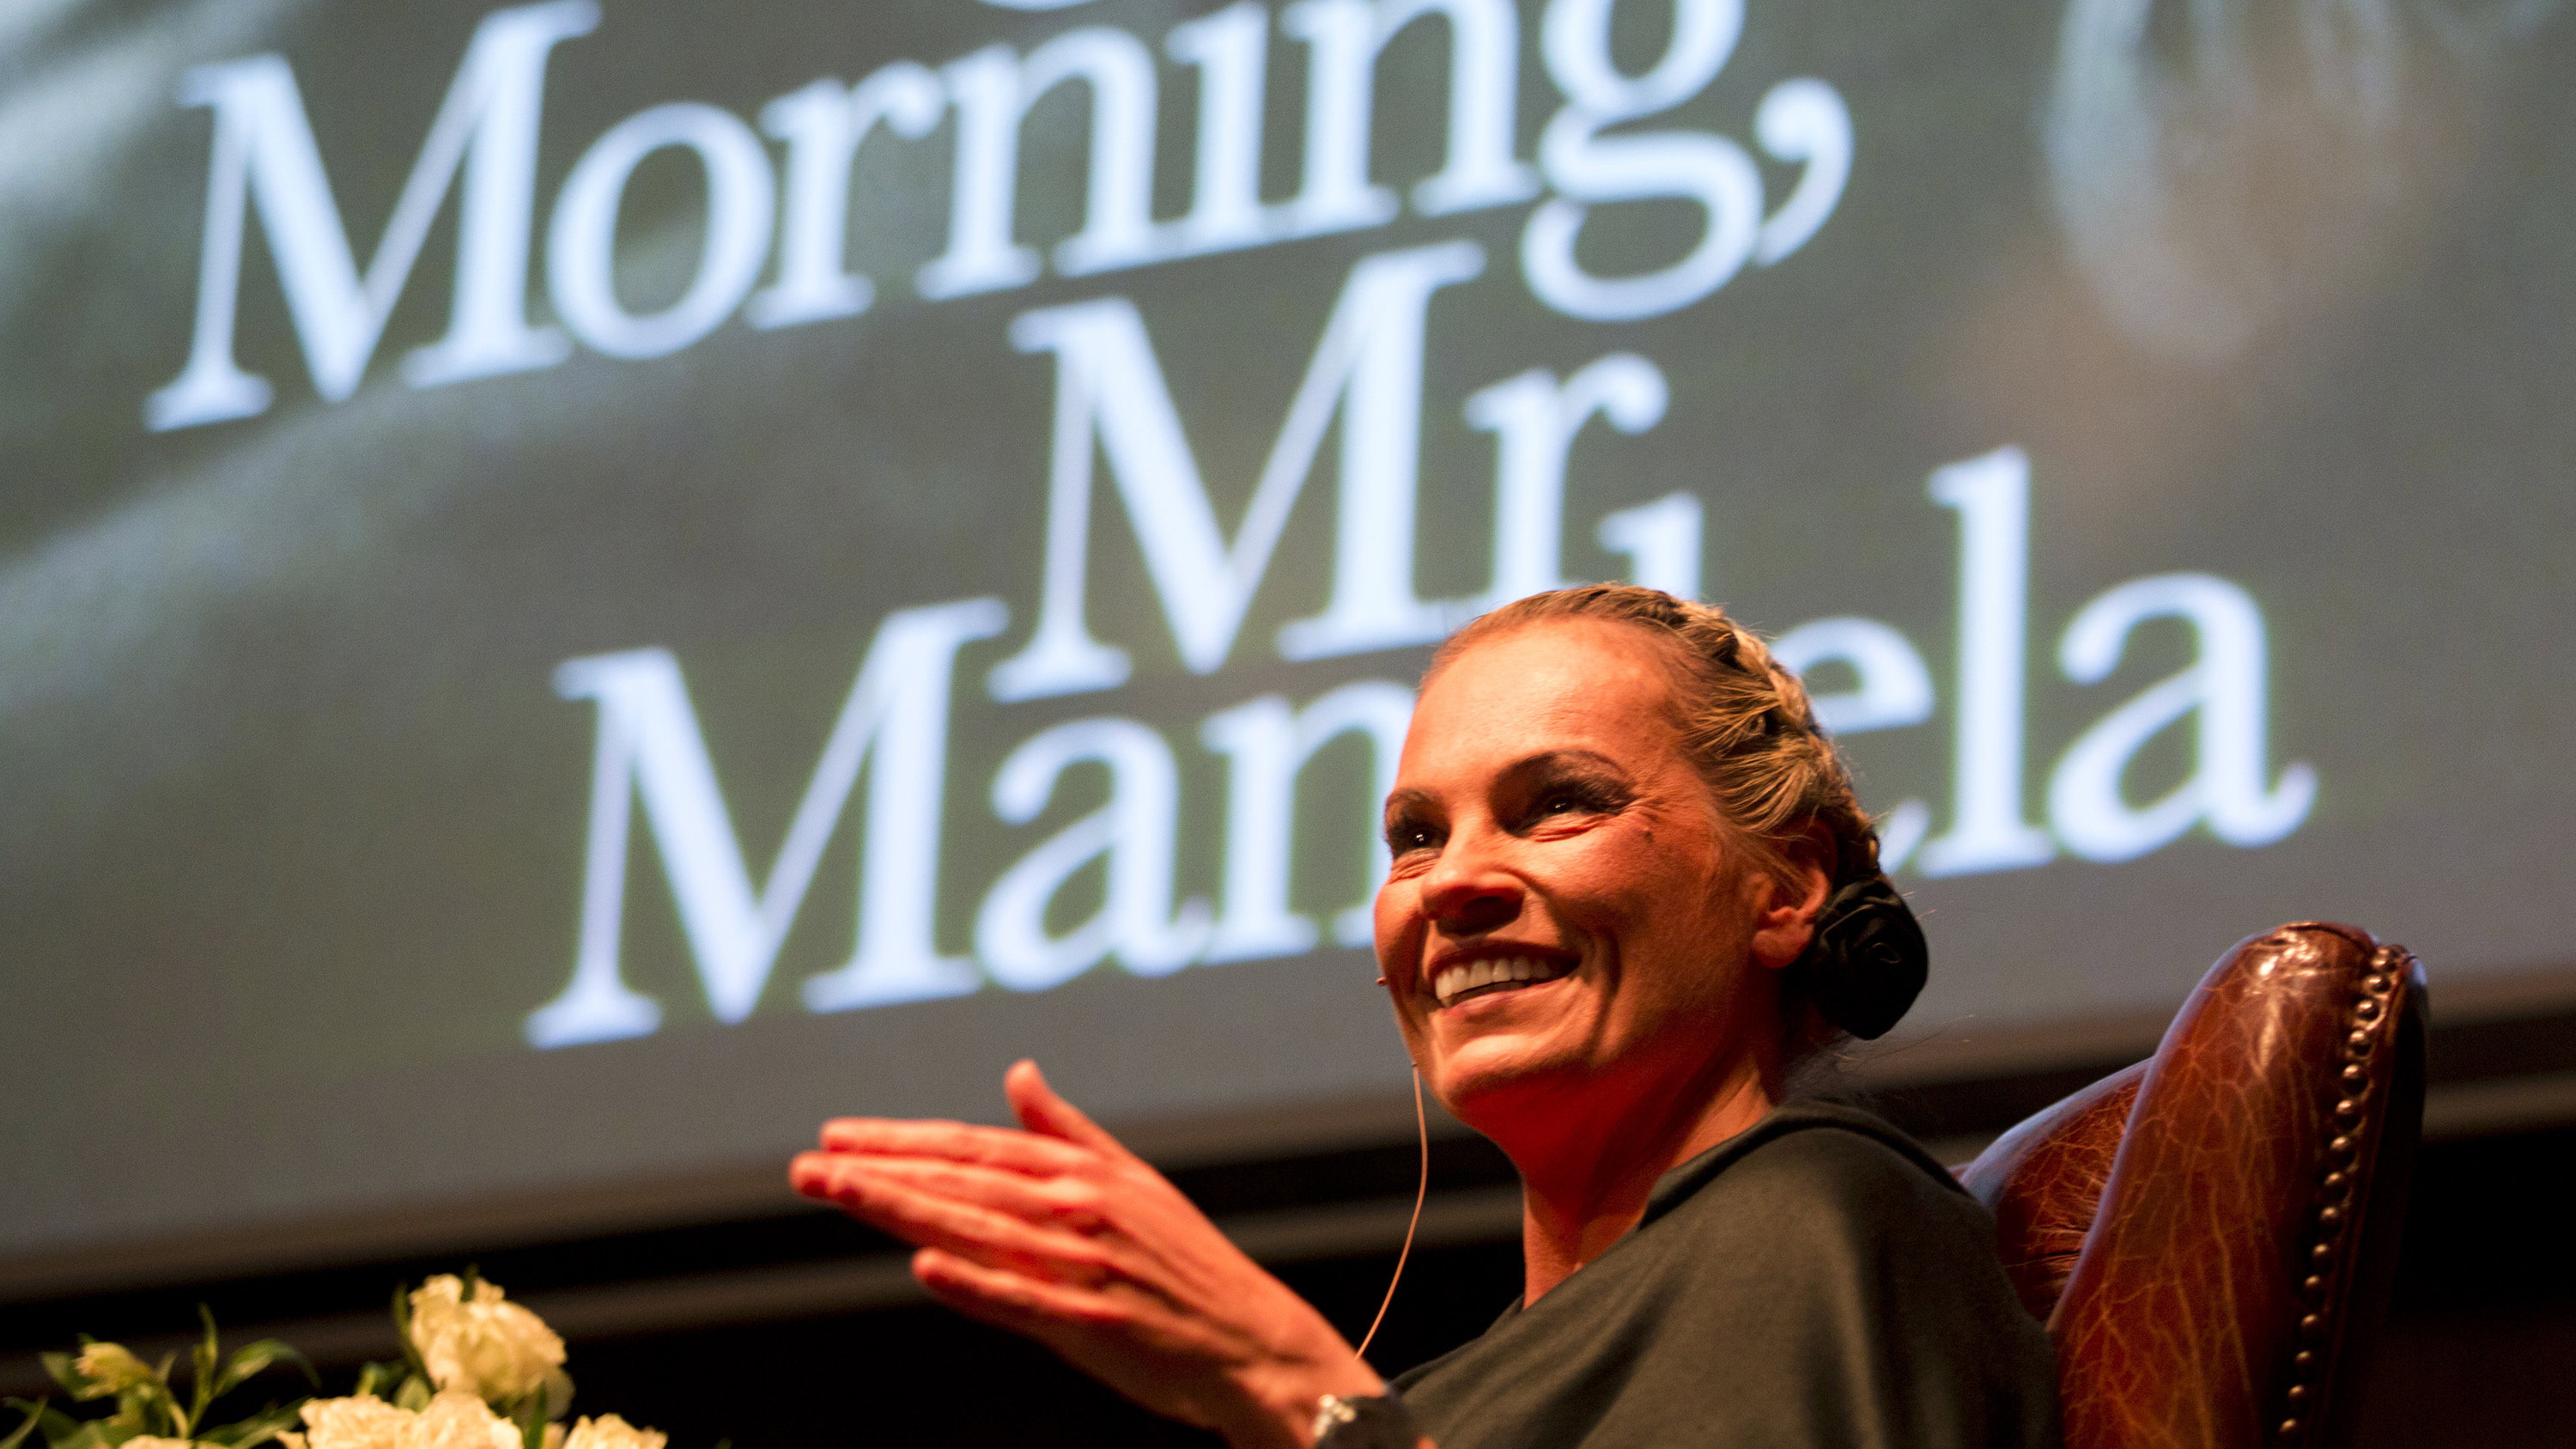 """Nelson Mandela's former private assistant Zelda la Grange speaks at the launch of her book """"Good Morning, Mr Mandela"""" in Johannesburg, June 19, 2014. La Grange's memoirs, published on Thursday, traces the 43-year-old's upbringing in an Afrikaans family that considered Mandela a terrorist. It goes on to describe her improbable appointment to his office when he became president in 1994, and her close relationship with him until his death last year."""